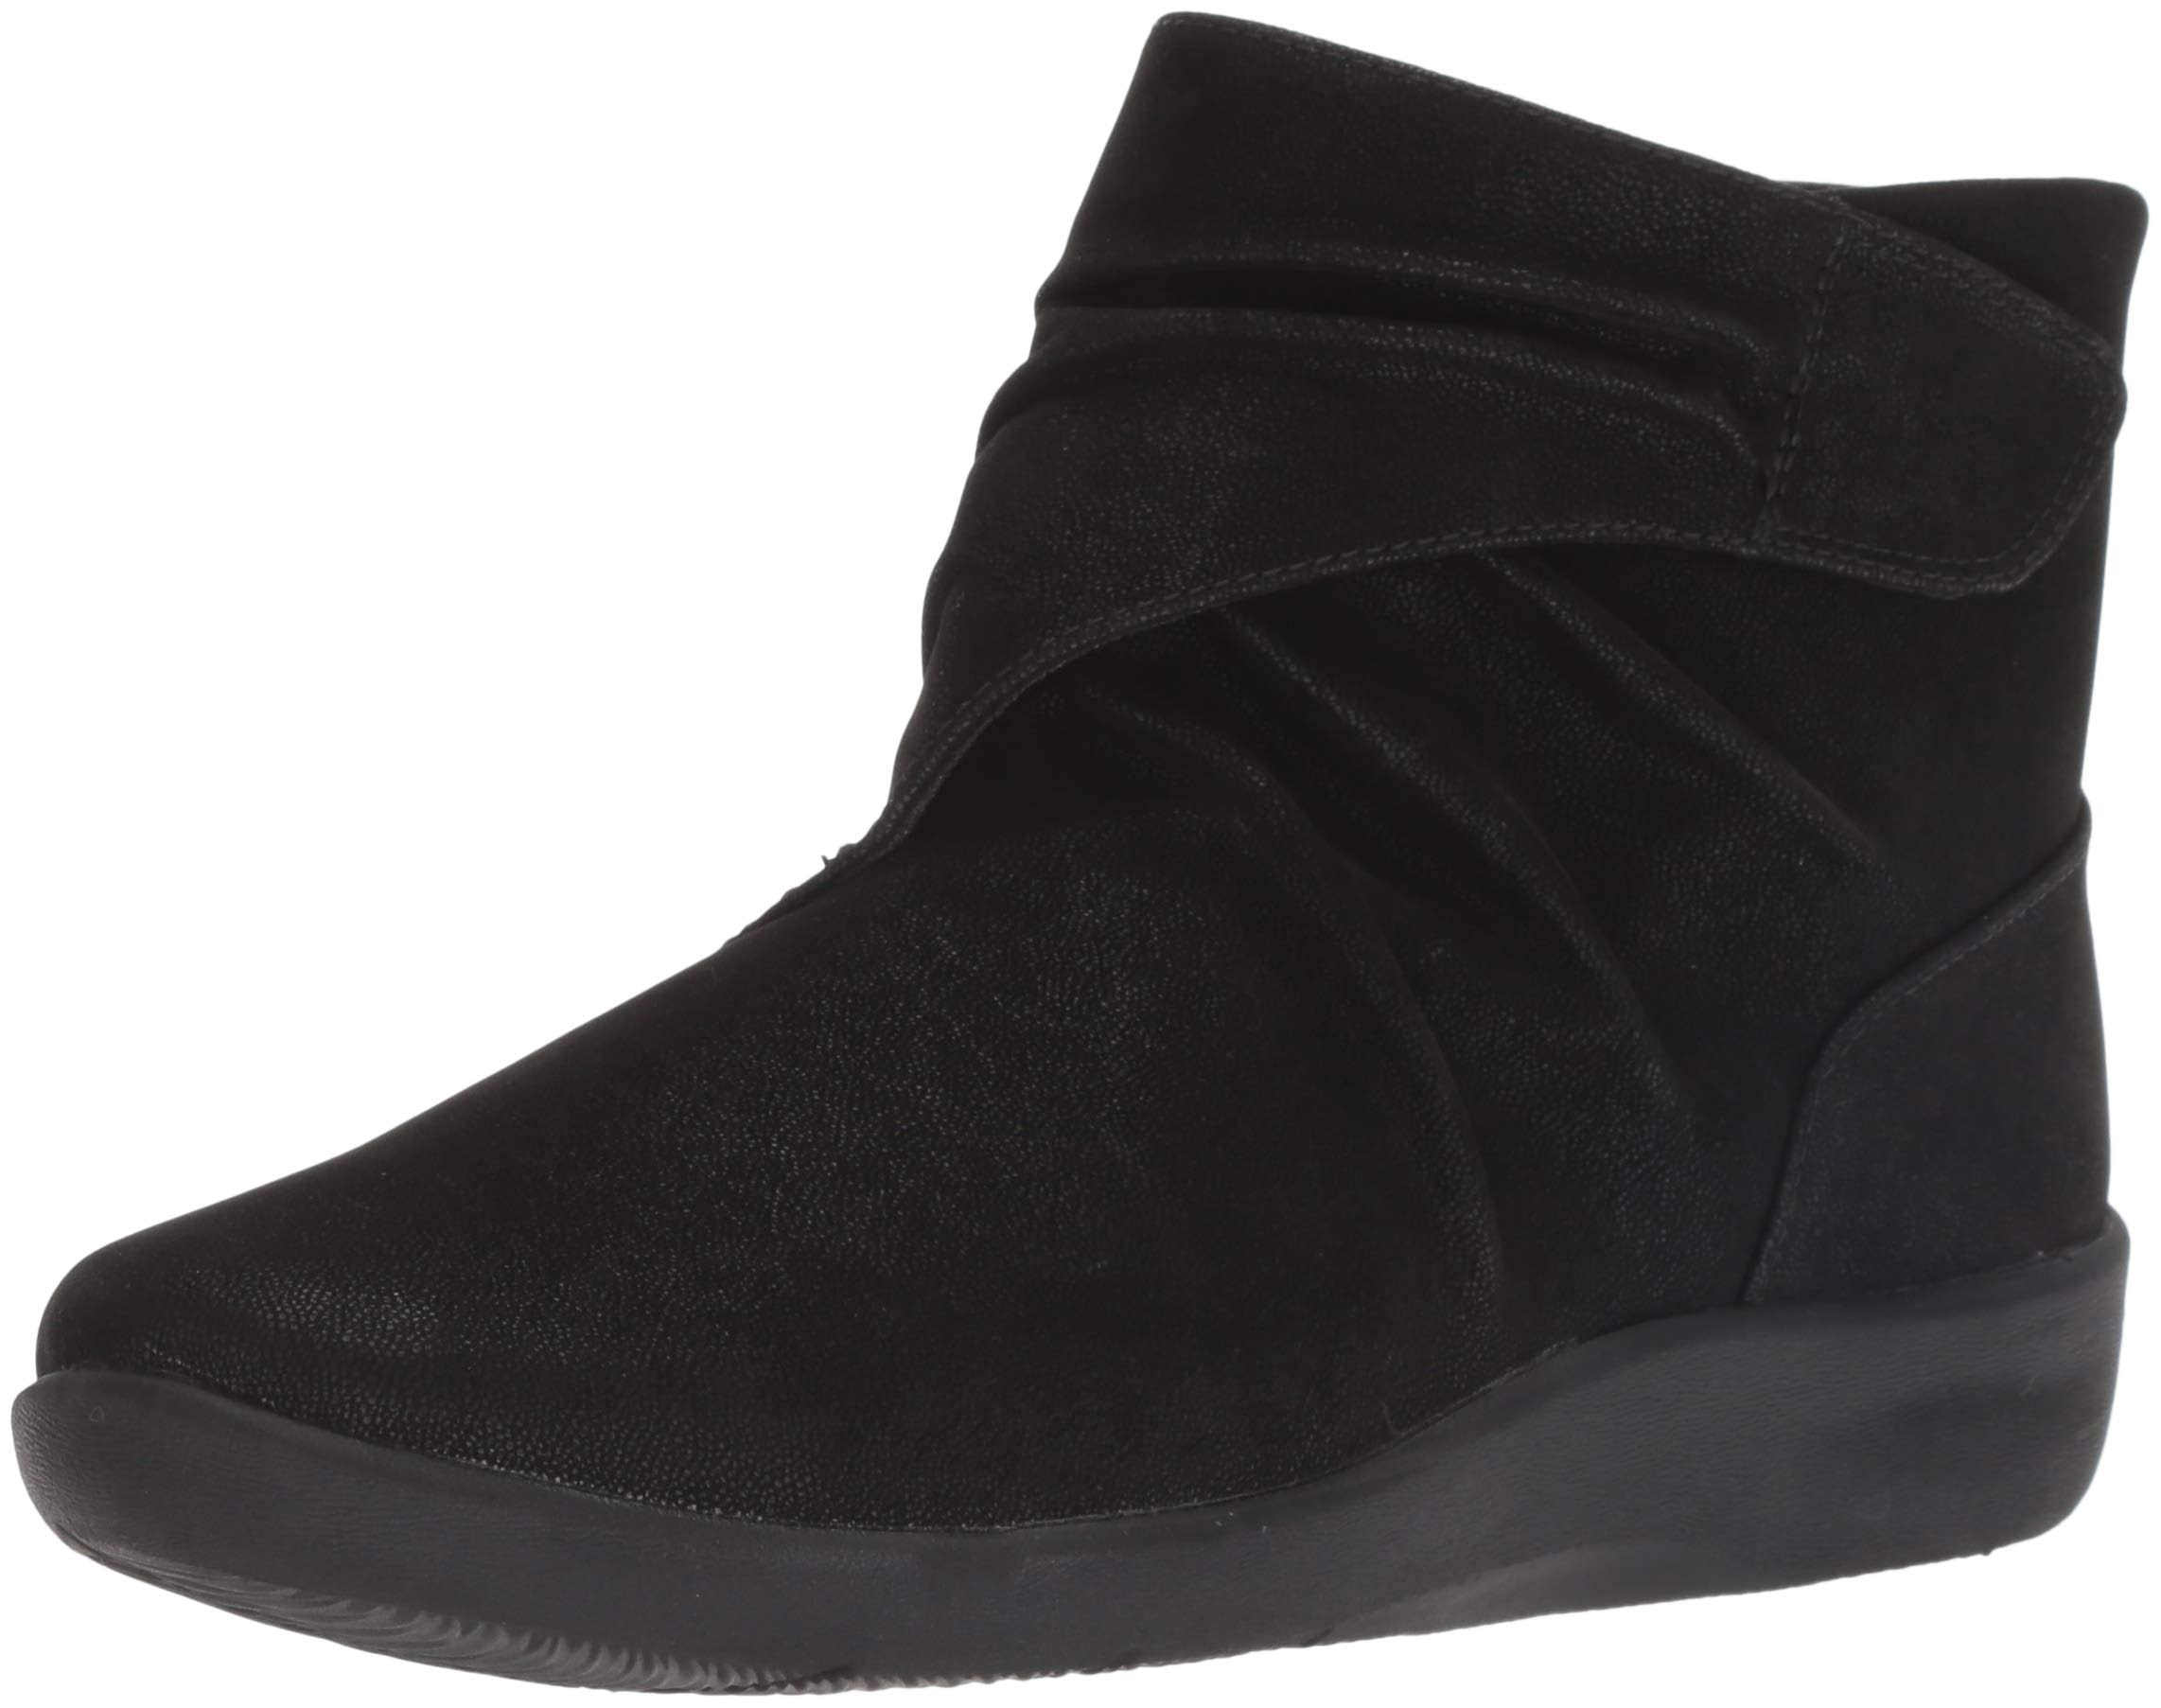 Sillian Fashion Dames Synt Tana Clarks Boot Black qUVSzMpG